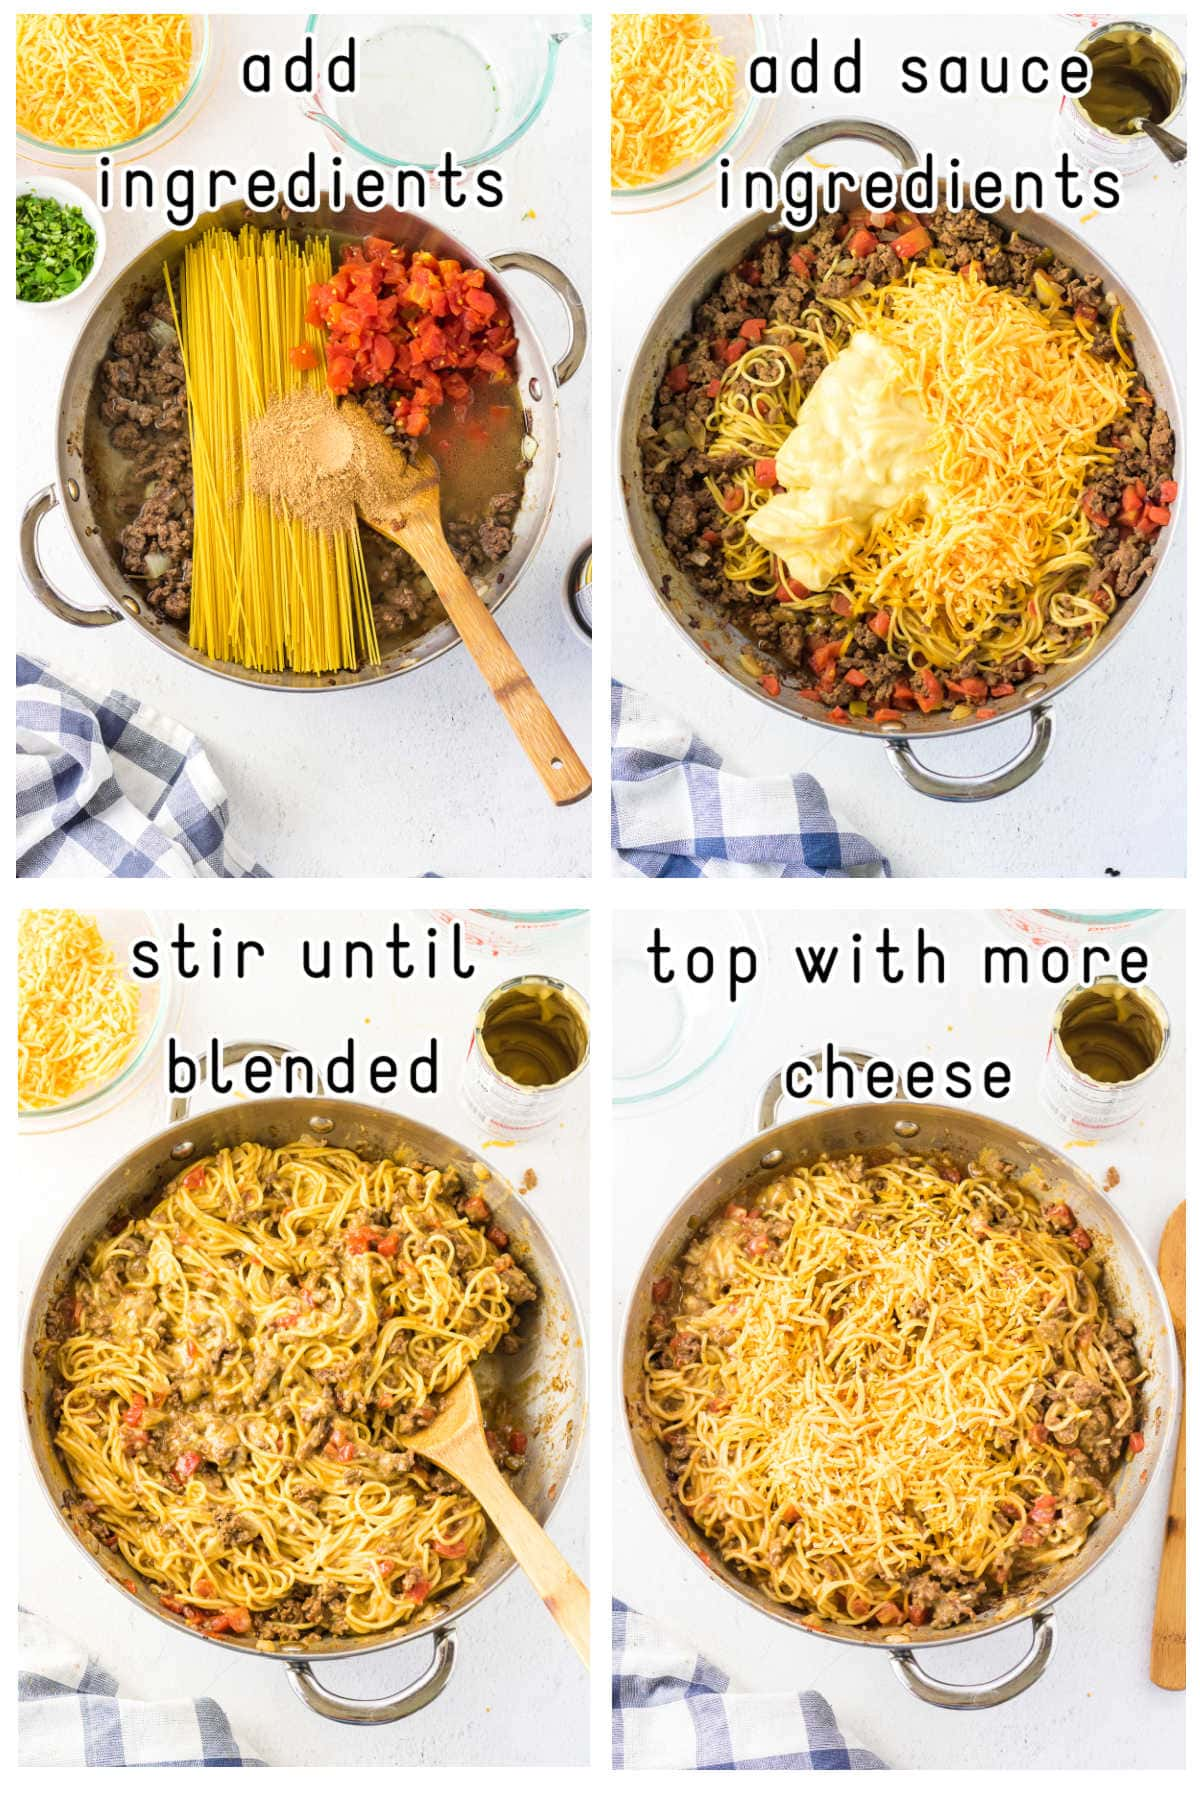 Step by step images showing how to make taco spaghetti.